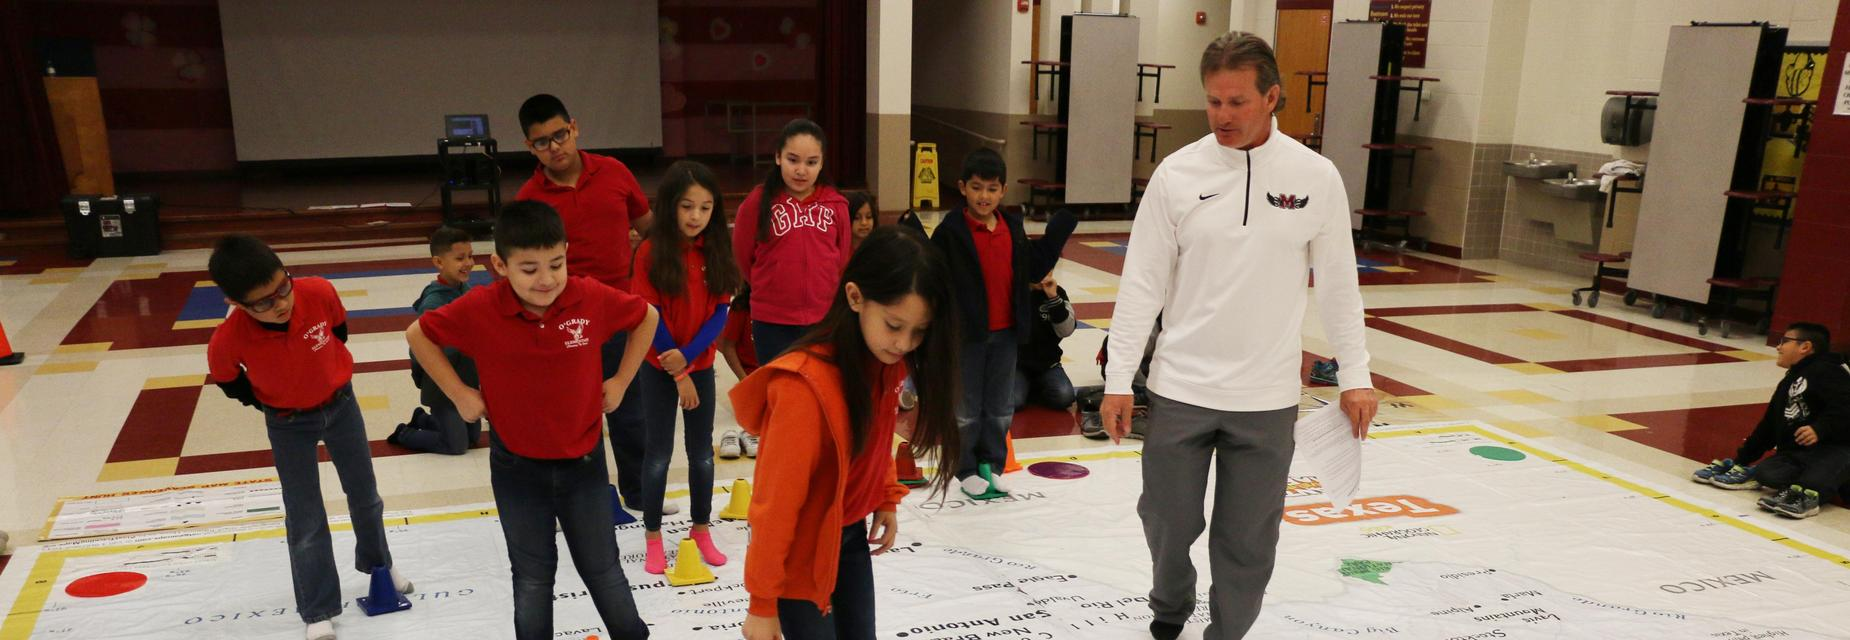 O' Grady Elementary students learn about the big giant traveling map through their Physical Education classes.